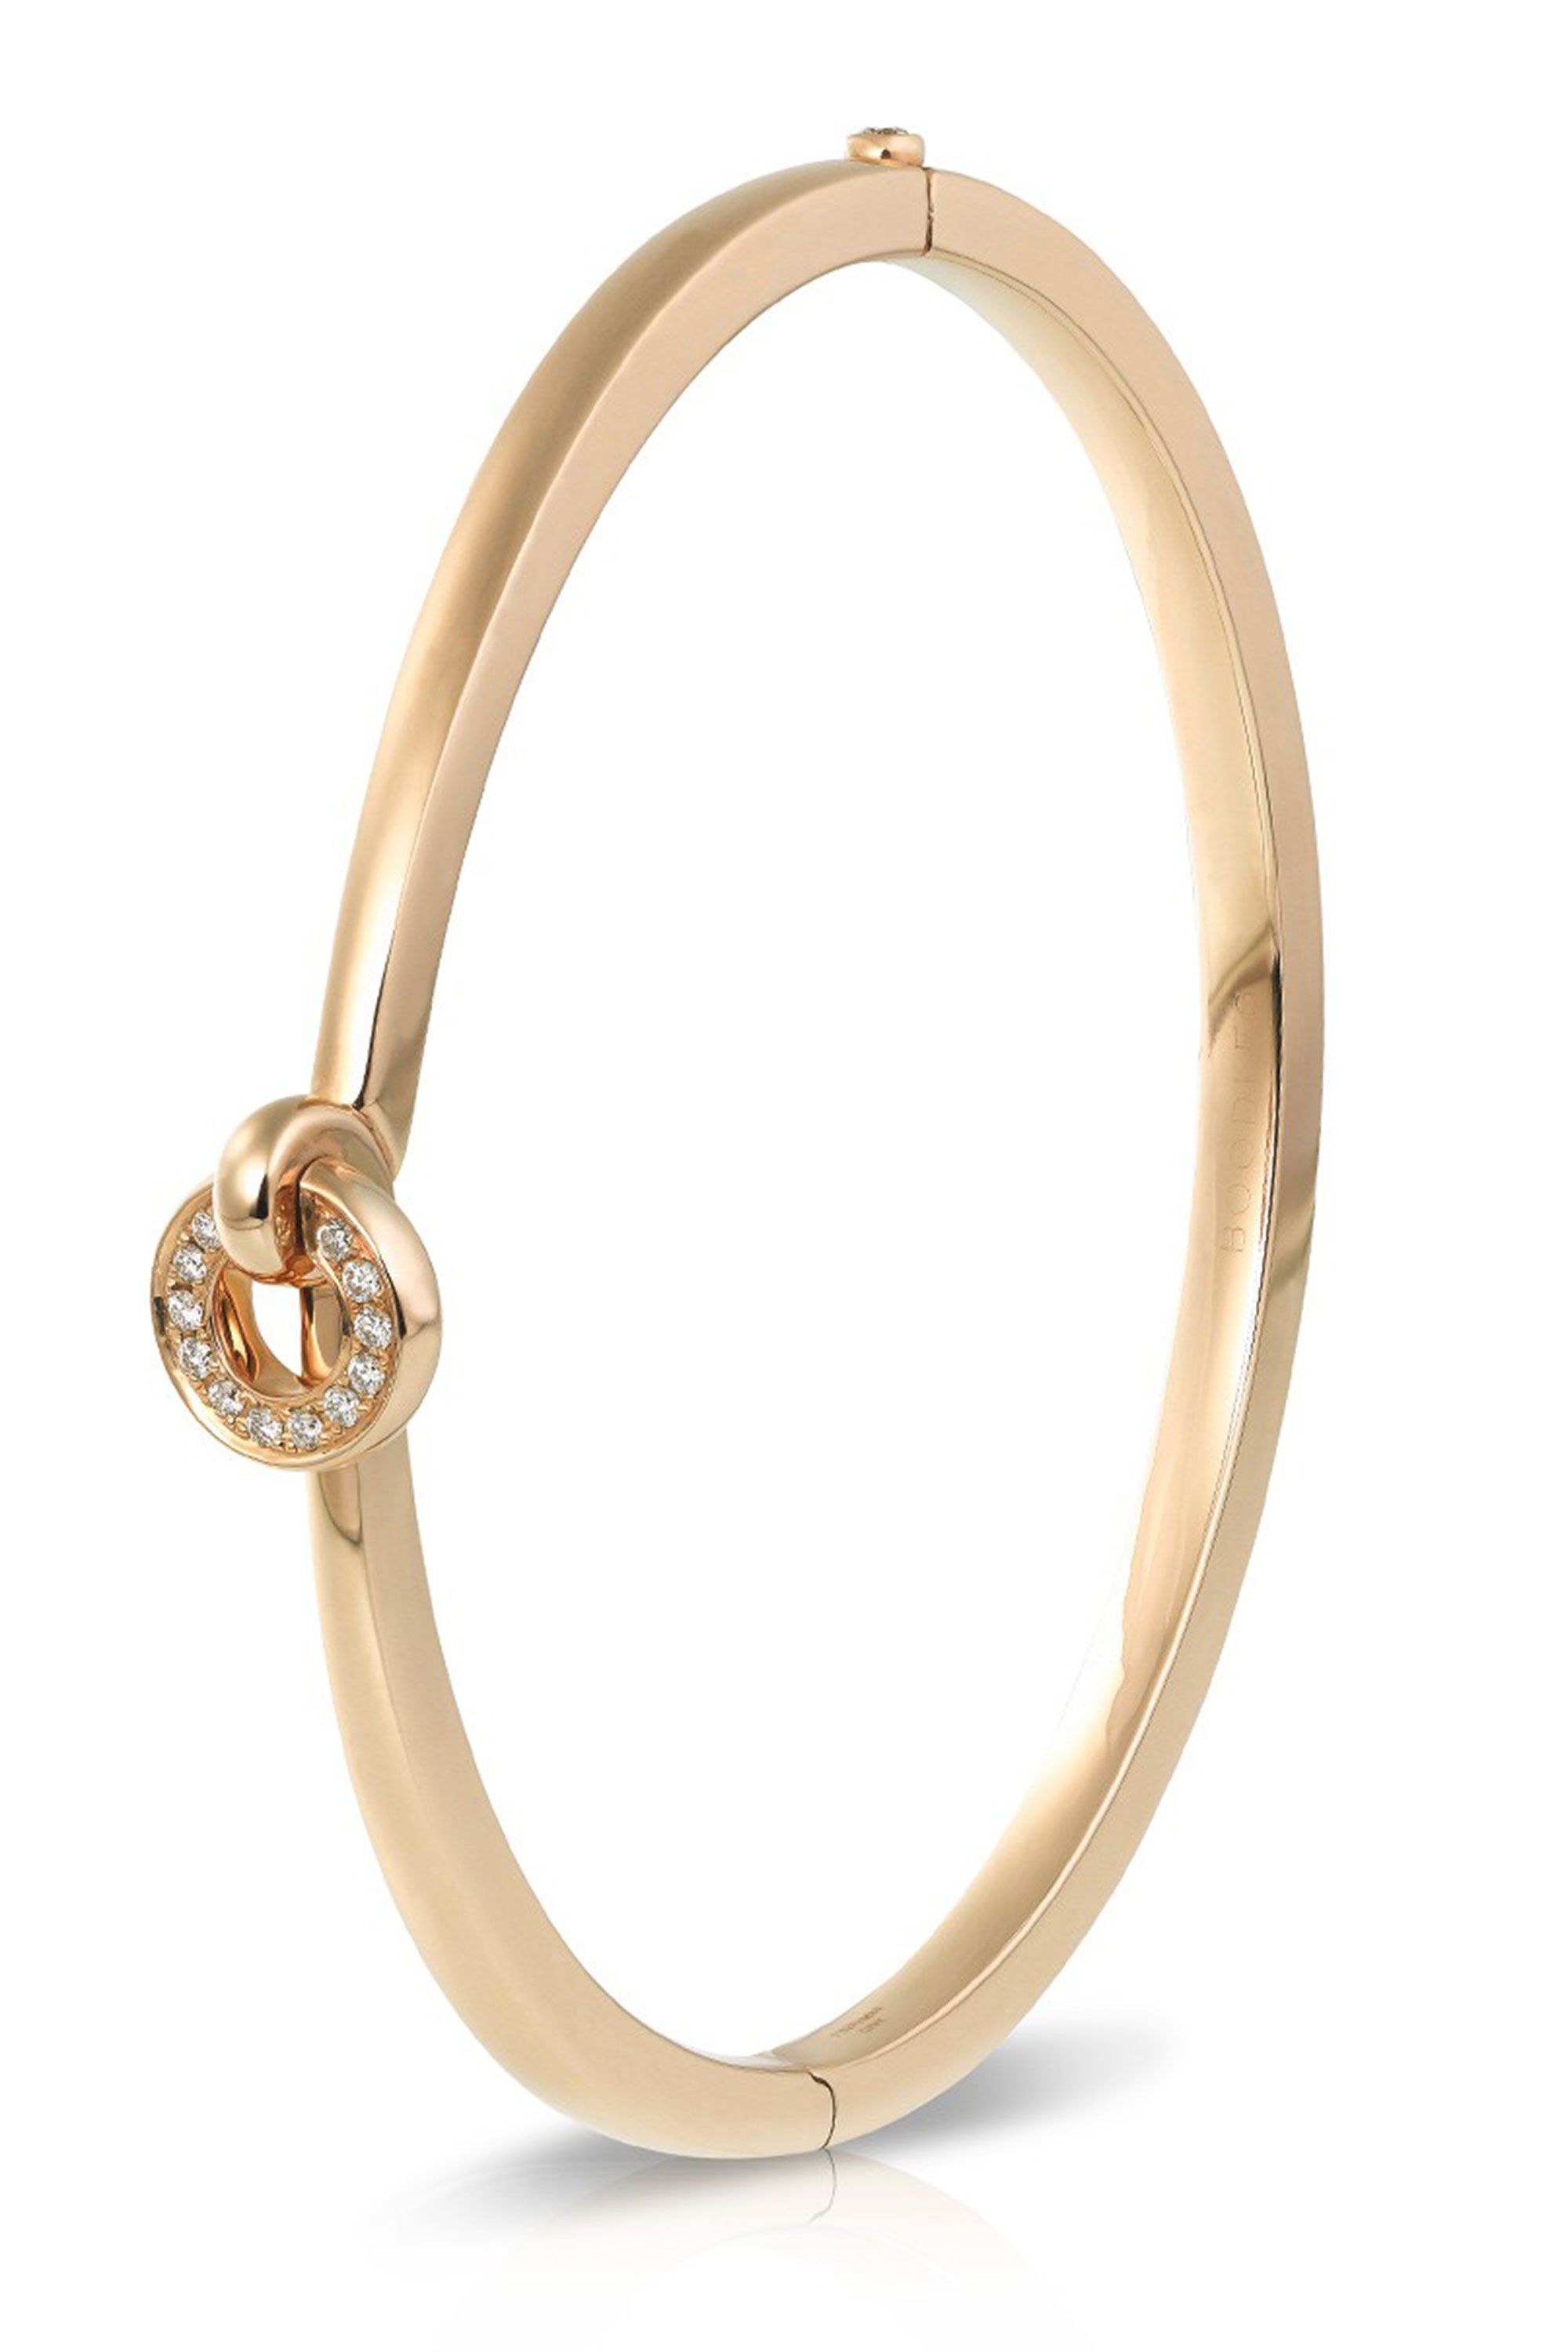 the jewellery cartier love bangle bracelets best chaumet of cuffs fashion news bangles uk watches expensive